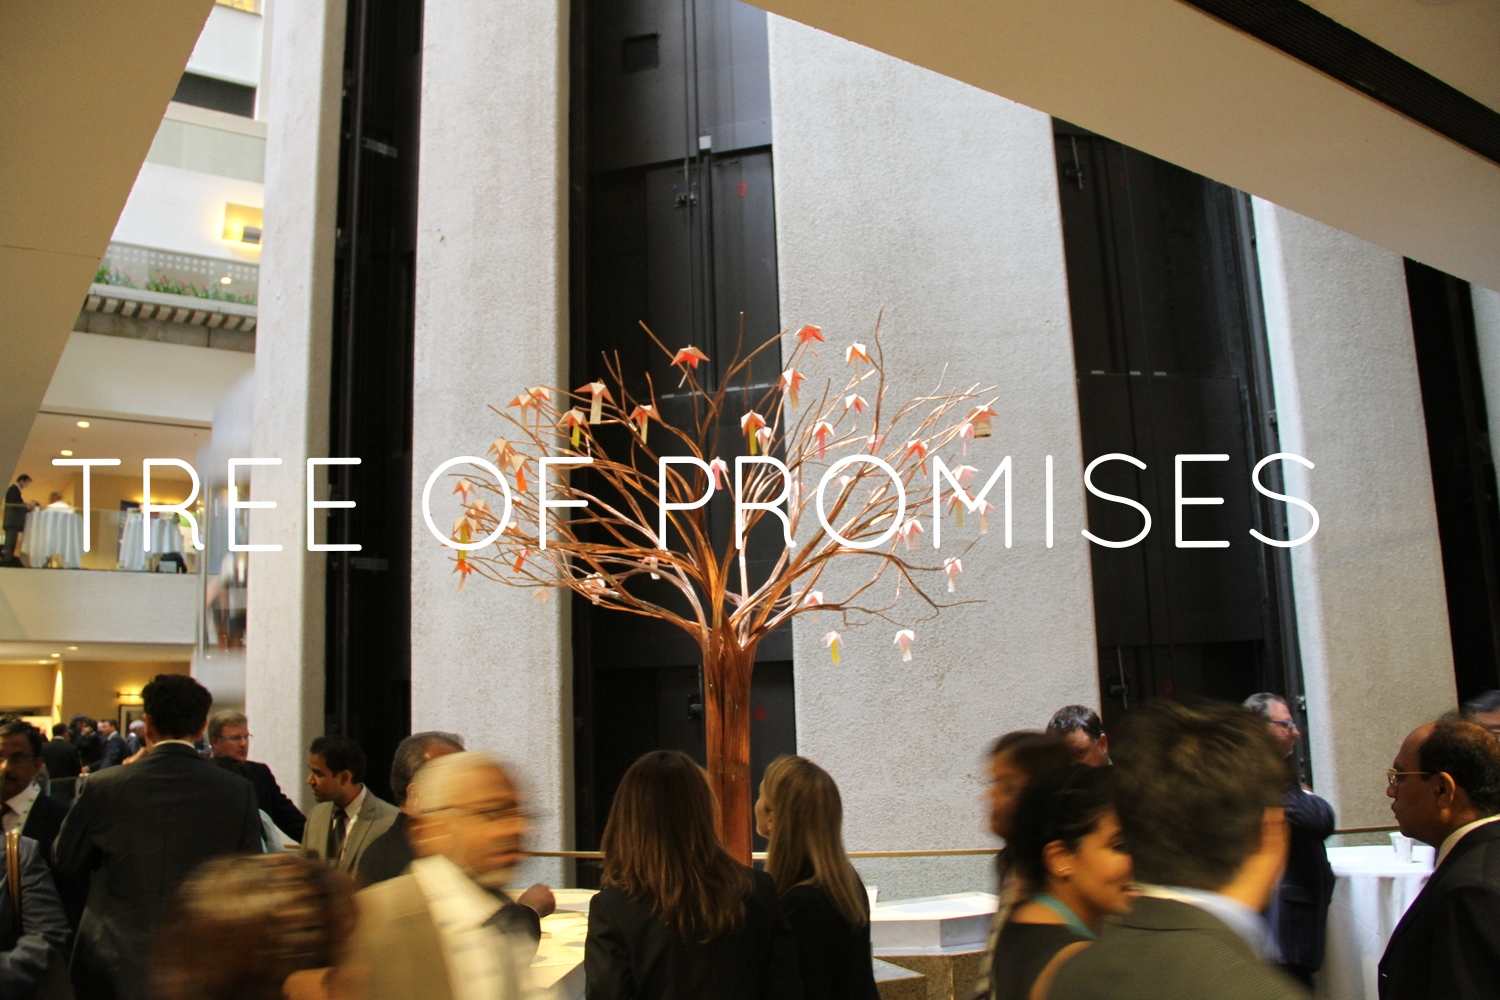 Interactive sculpture commissioned by the United Nations for the Global Compact Office Leader's Summit.